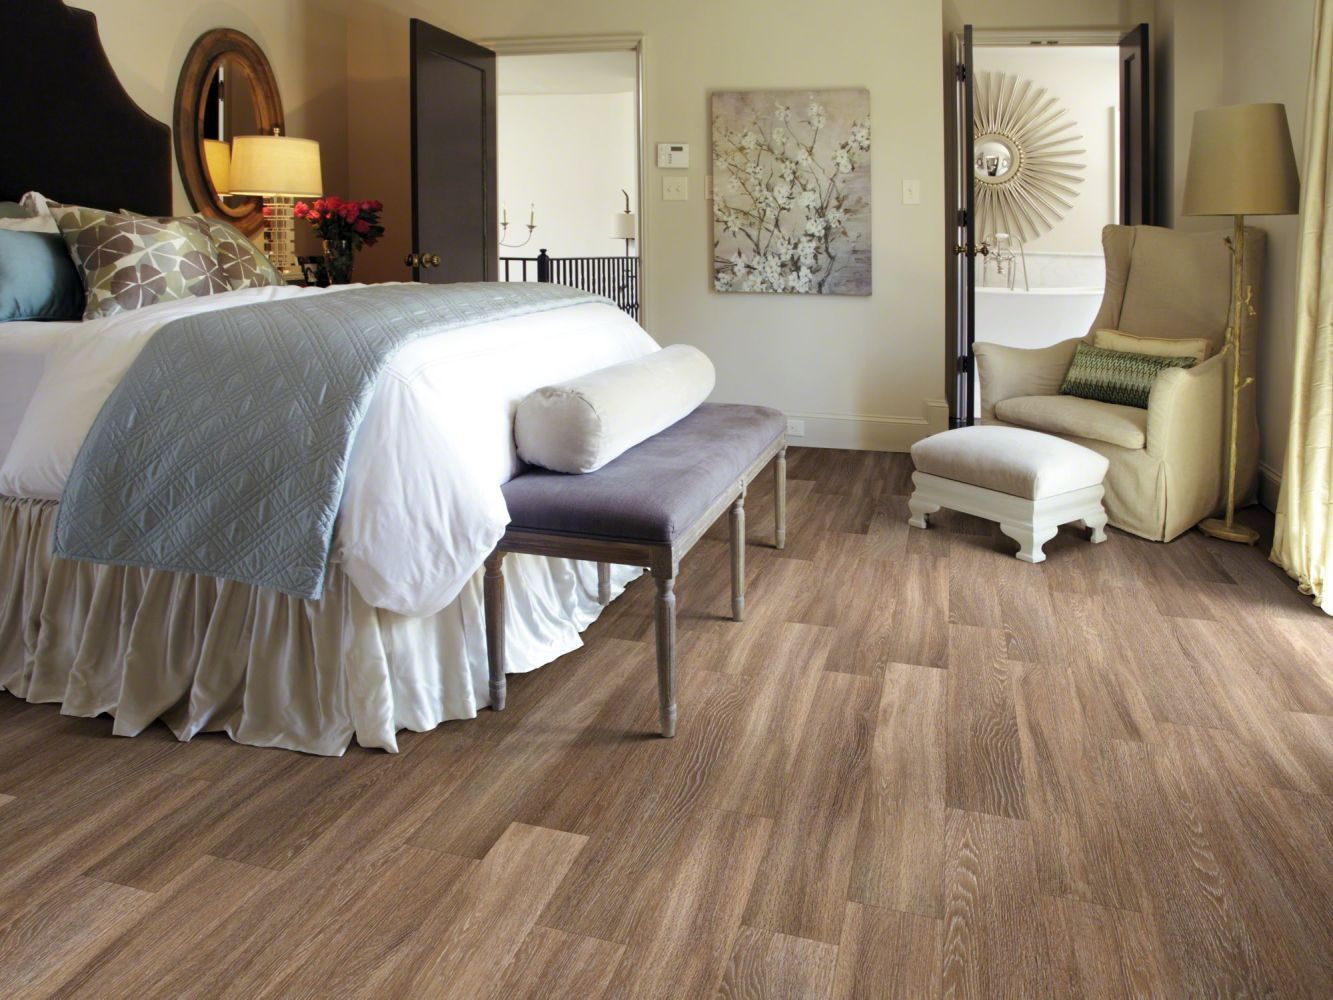 Shaw Floors Vinyl Residential World's Fair 12mil Seattle 00574_0319V